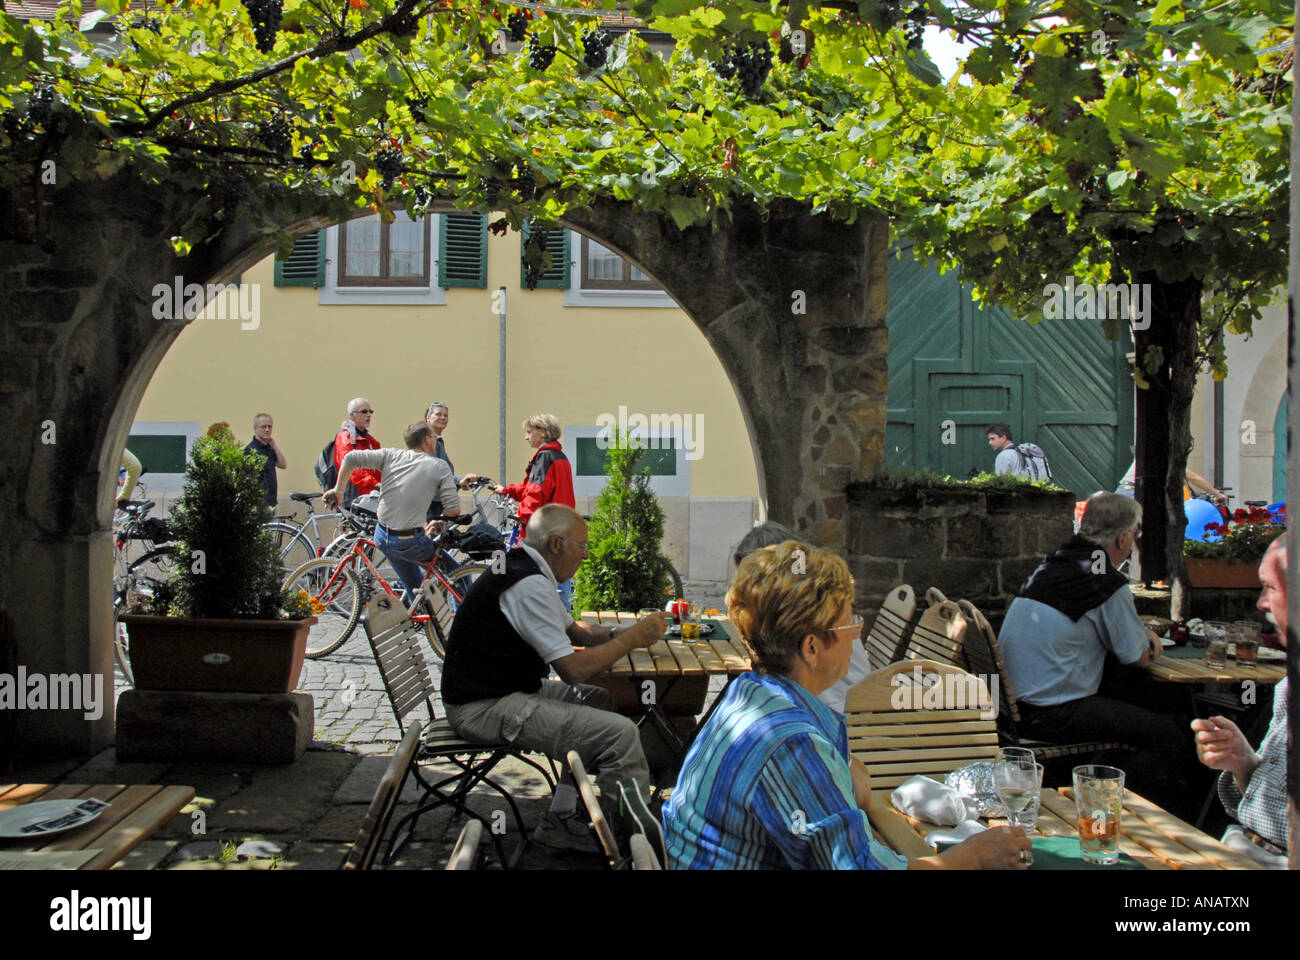 Forst, Wine route day, streets closed for cars, Germany, Rhineland-Palatinate, Deutsche Weinstrasse - Stock Image